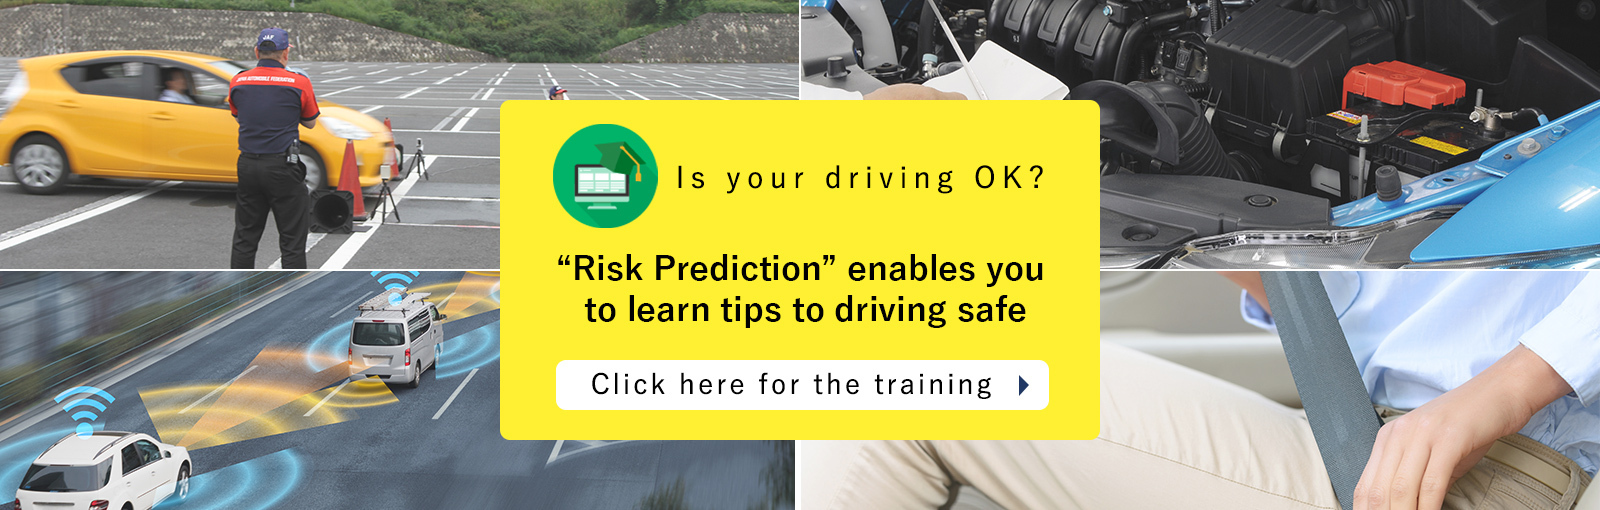 Risk Prediction enables you to learn tips to driving safe